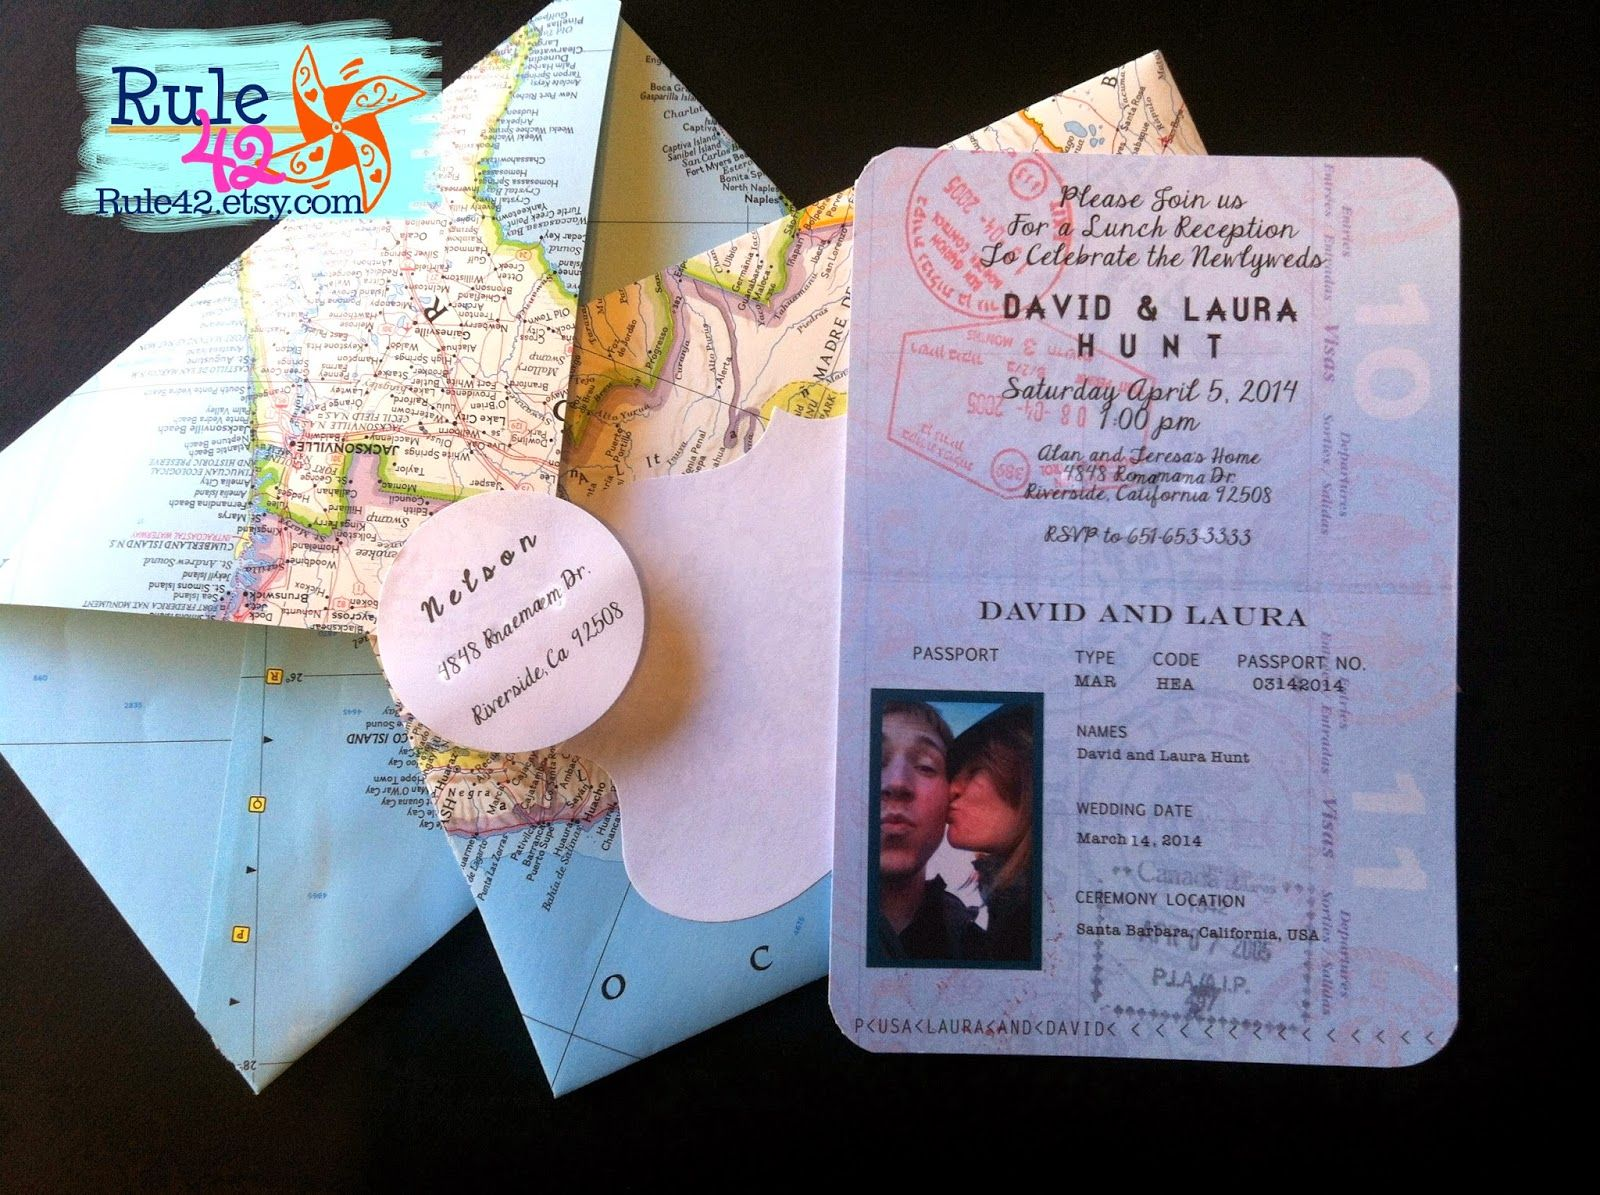 wedding invitations map%0A Passport Invitation by Rule   etsy com Travel wedding  maps  atlas  travel